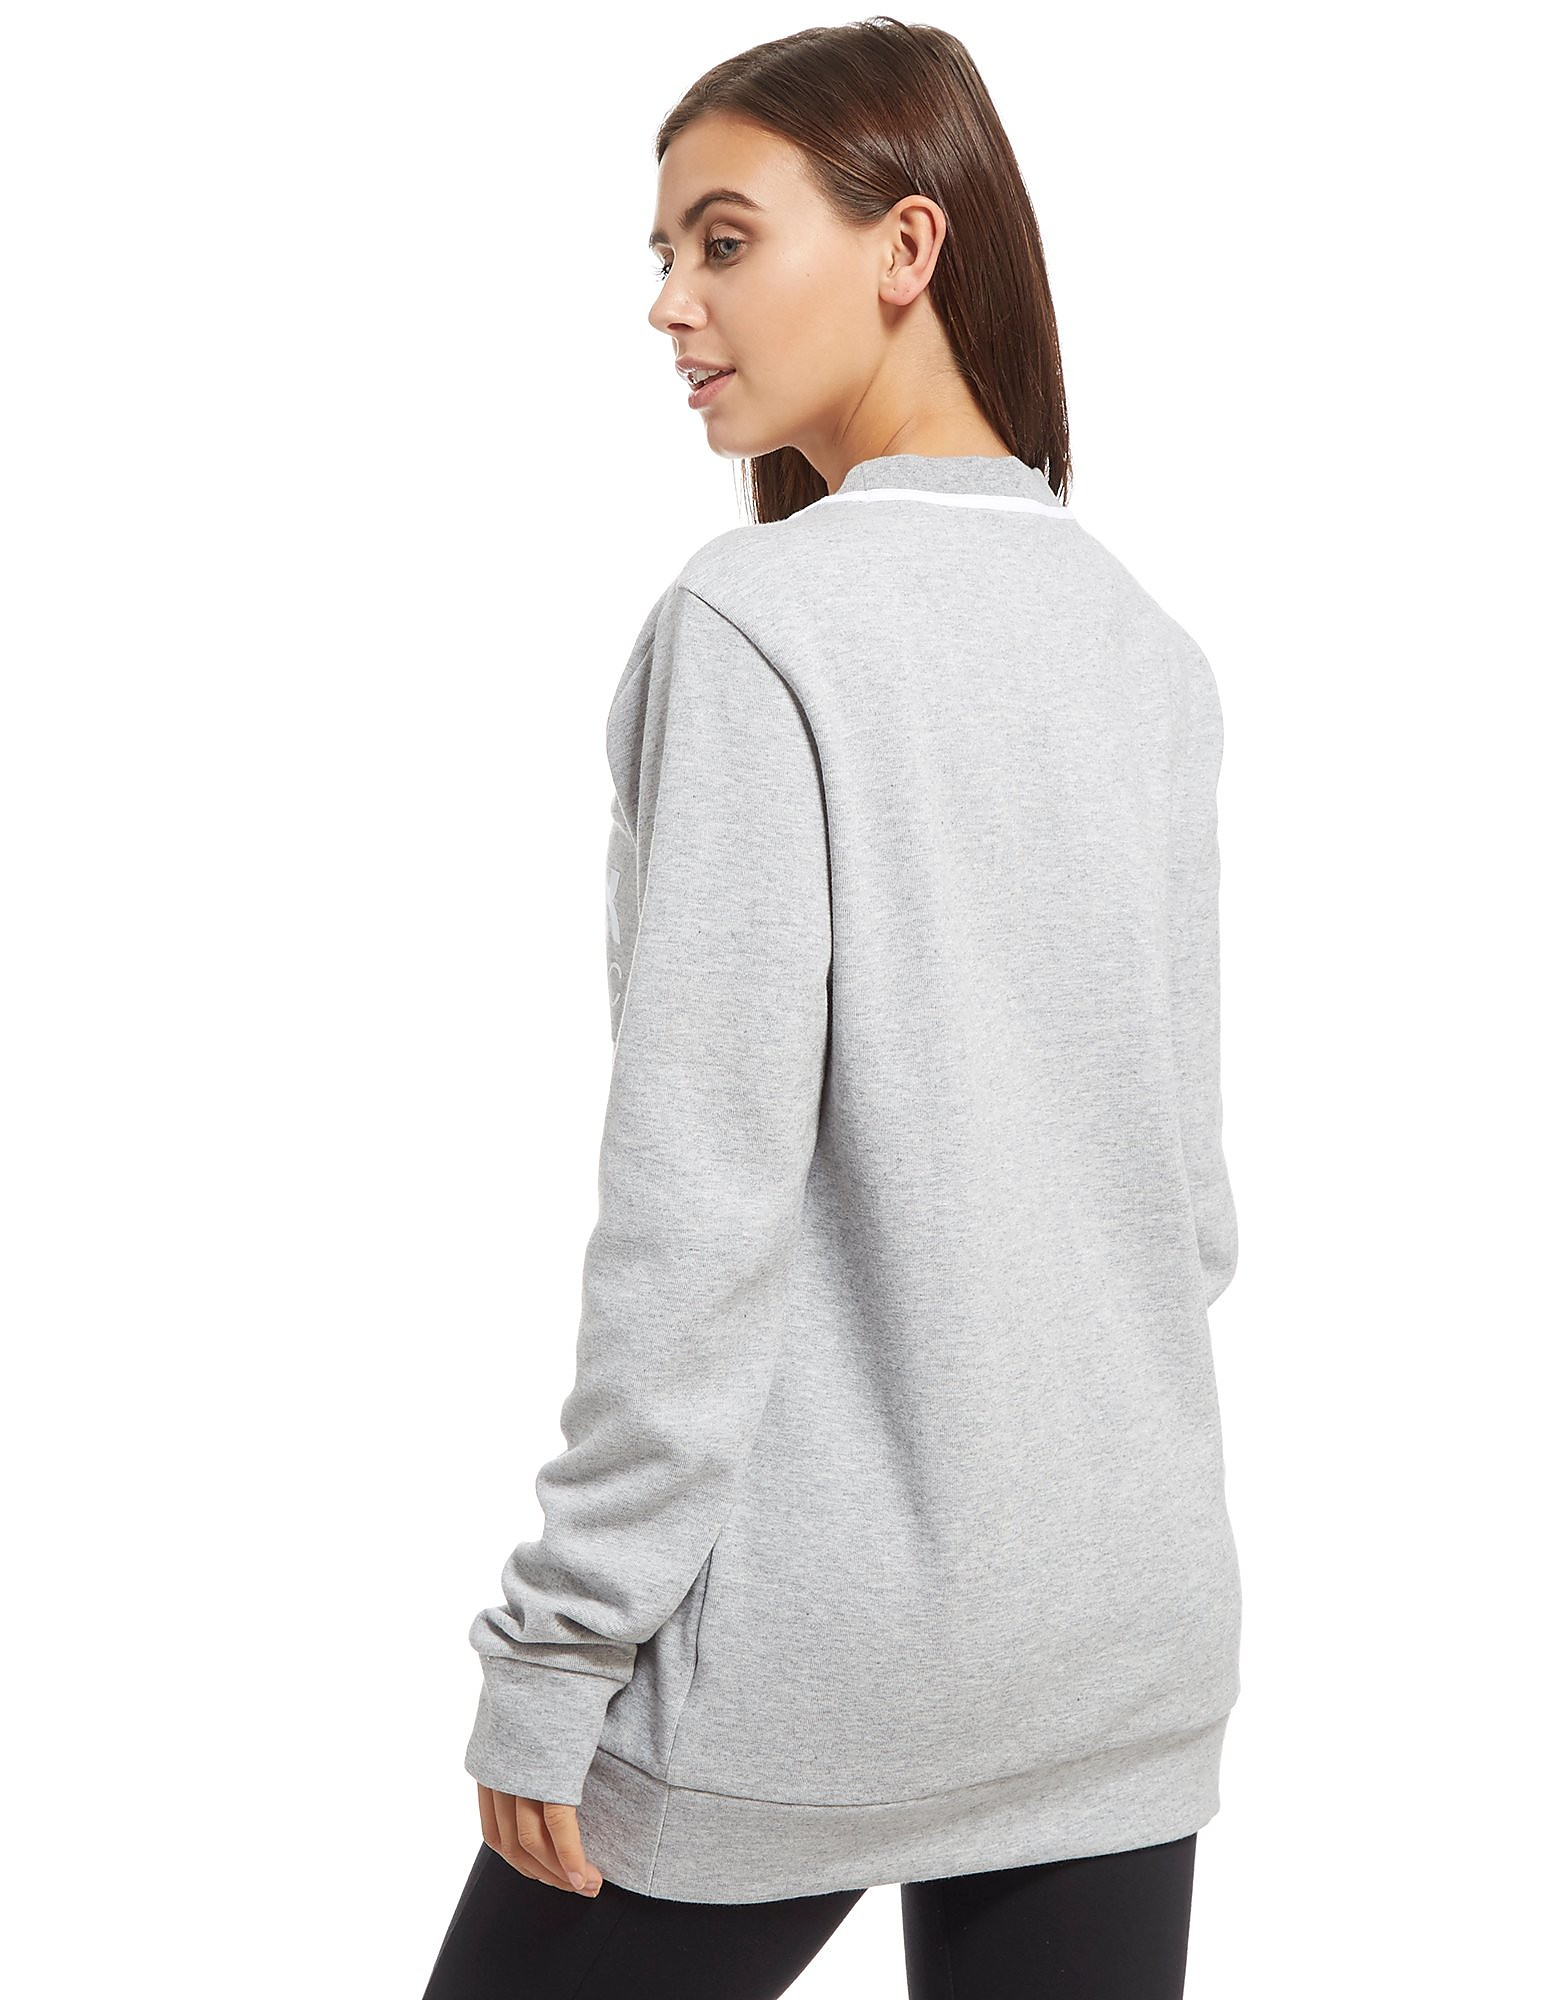 Reebok Iconic Fleece Crew Sweatshirt